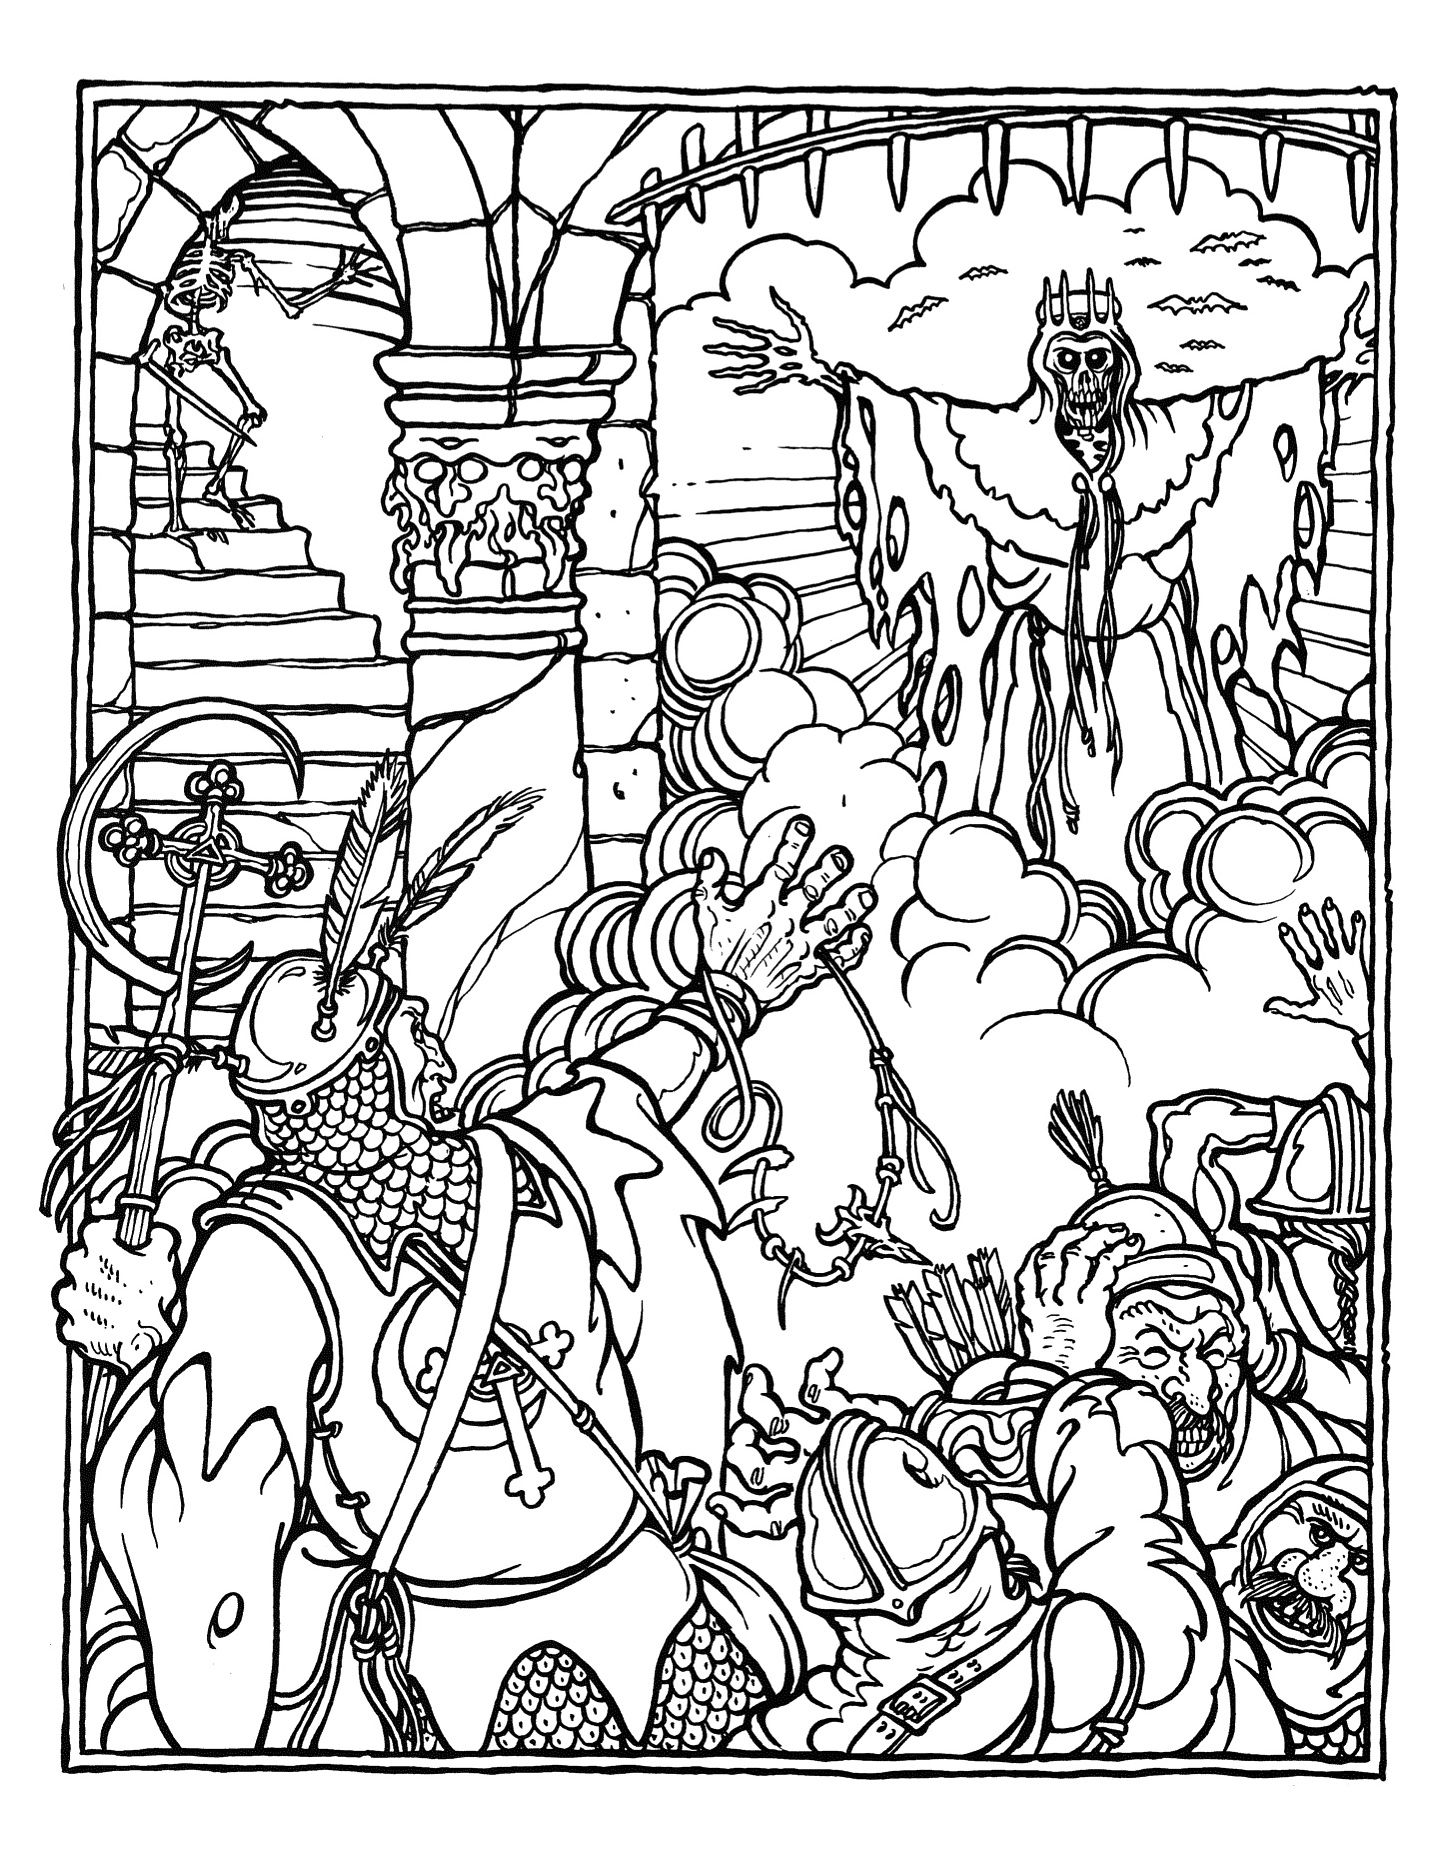 Coloring pages advanced - Amazing Dungeons And Dragons Coloring Book Wonderful Coloring Pages Image Advanced Coloring Pages